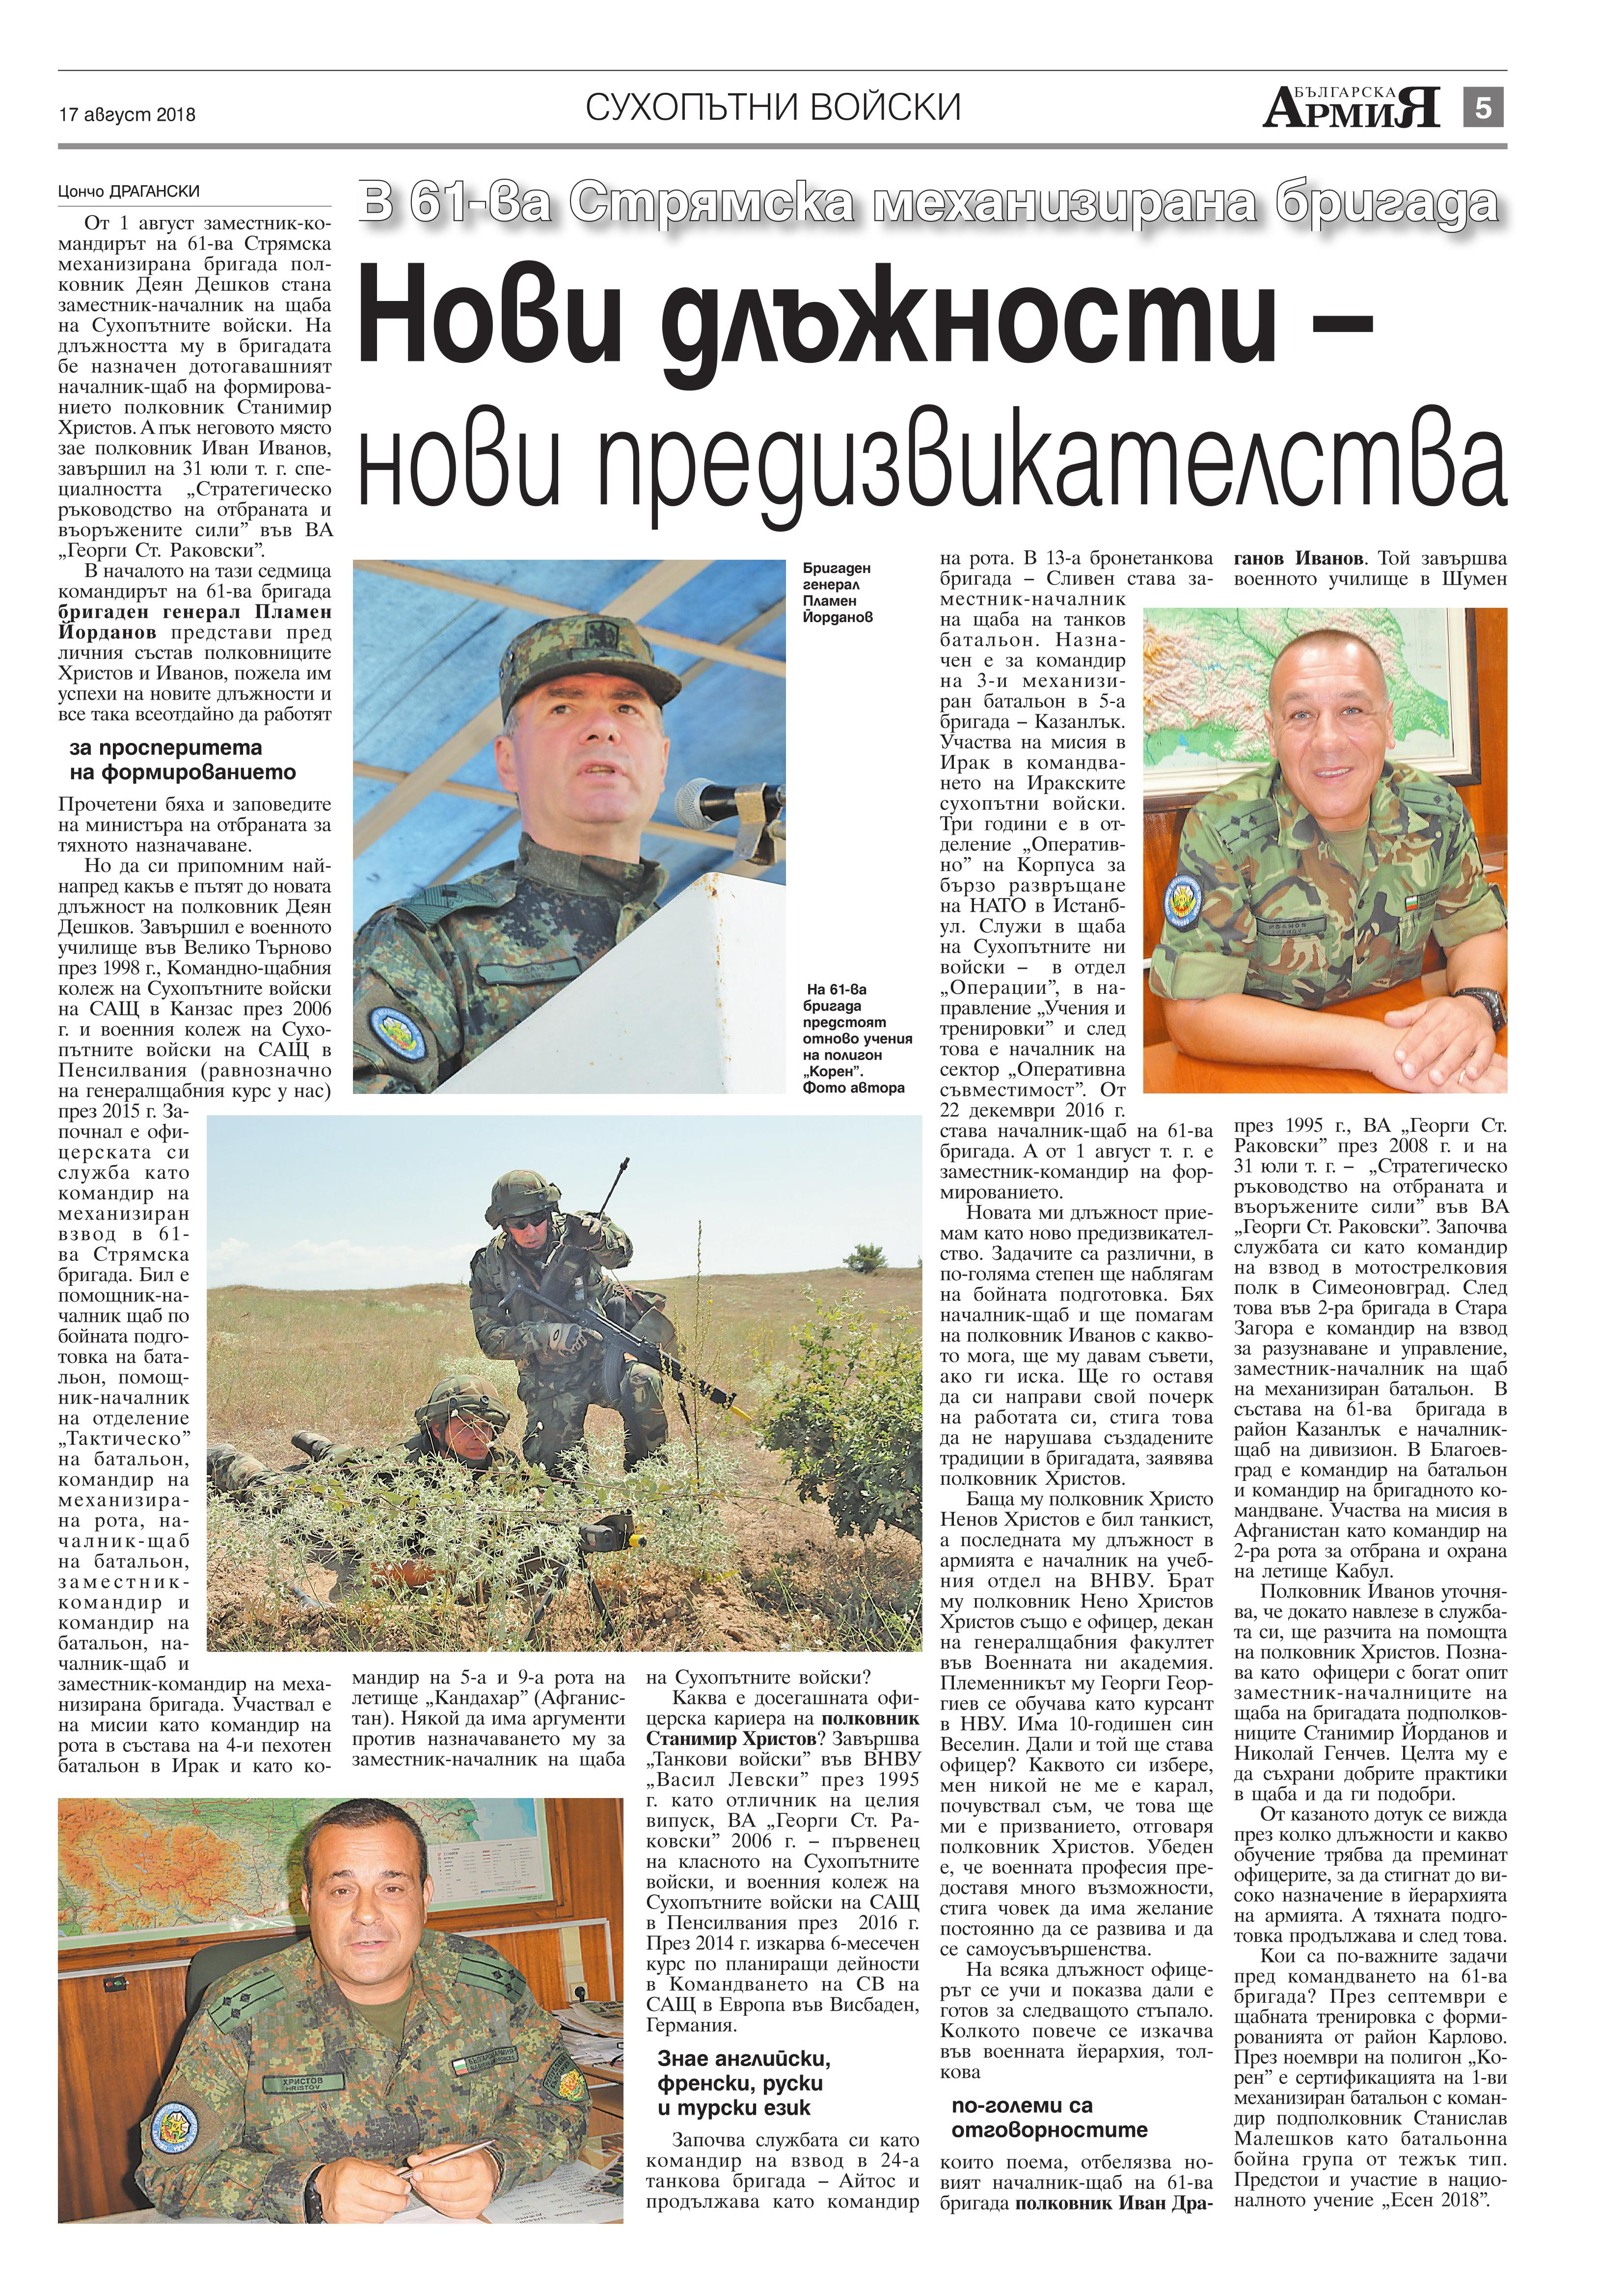 https://armymedia.bg/wp-content/uploads/2015/06/05.page1_-59.jpg